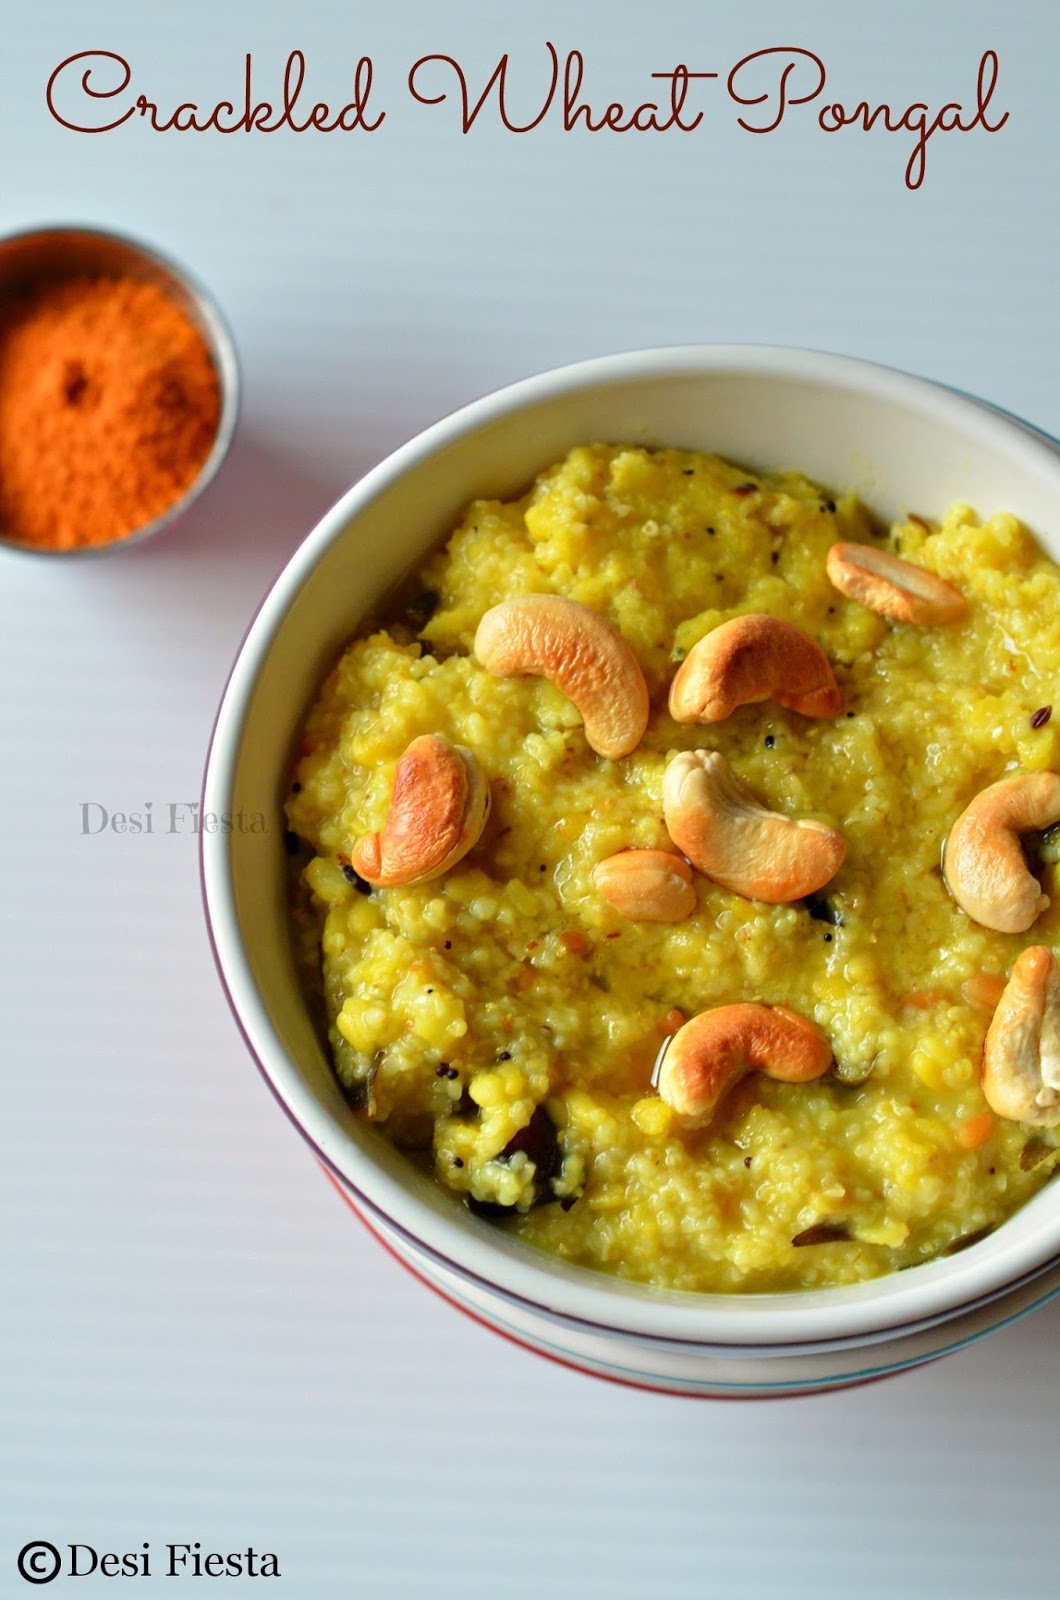 Godhumai Rava Pongal / Crackled Wheat Pongal